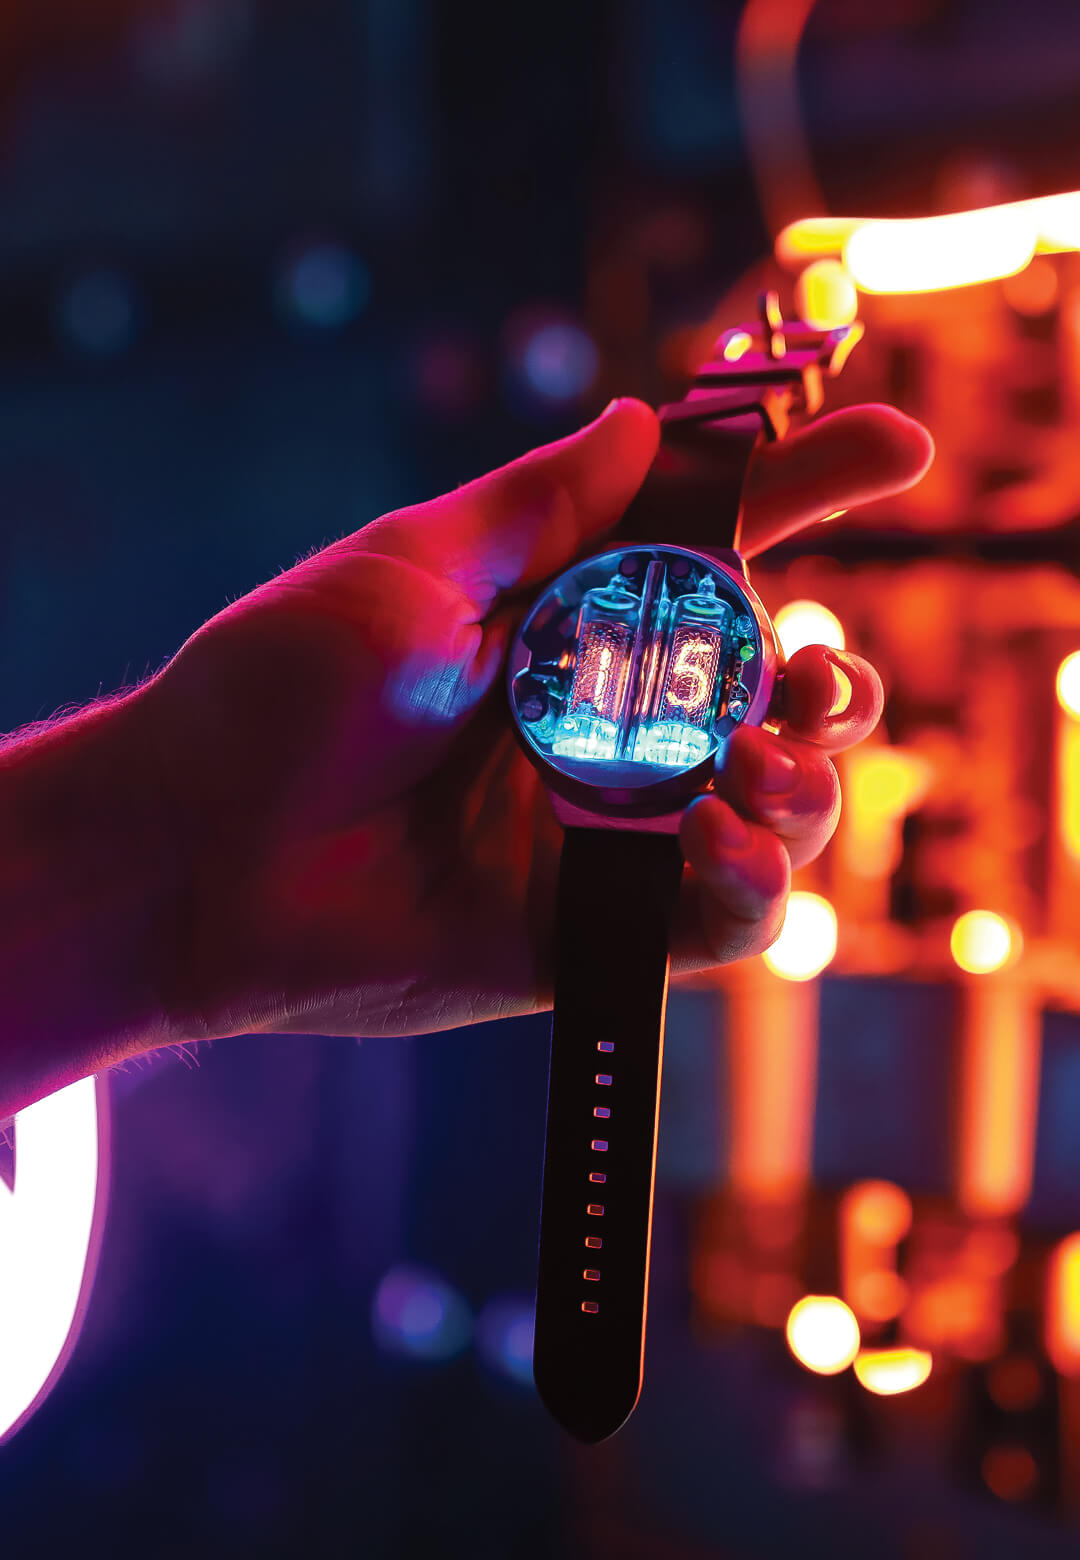 The Nixoid Next brings back the nixie tube technology back in style, encased in a well designed watch   Nixoid Next   Nixod Lab   STIRworld